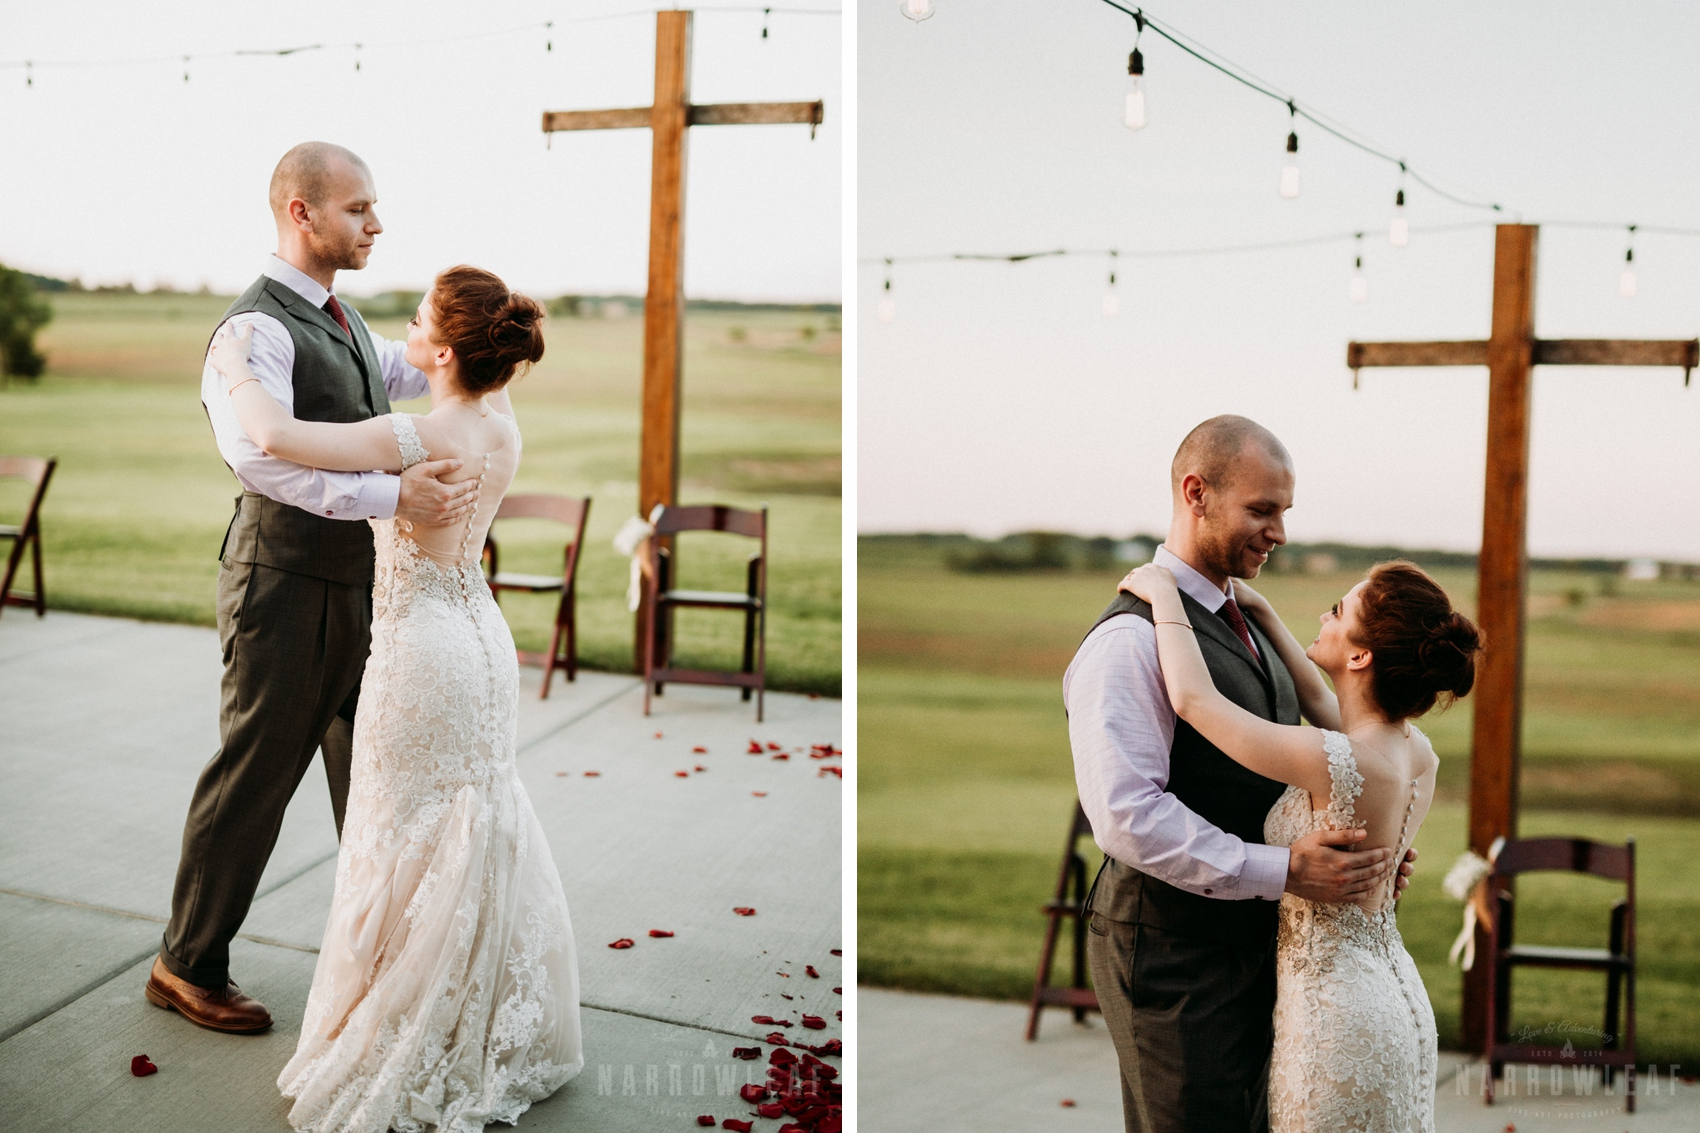 moody-sunset-bride-groom-wedding-photos-at-rustys-hitchin-post-new-richmond-wi029-030.jpg